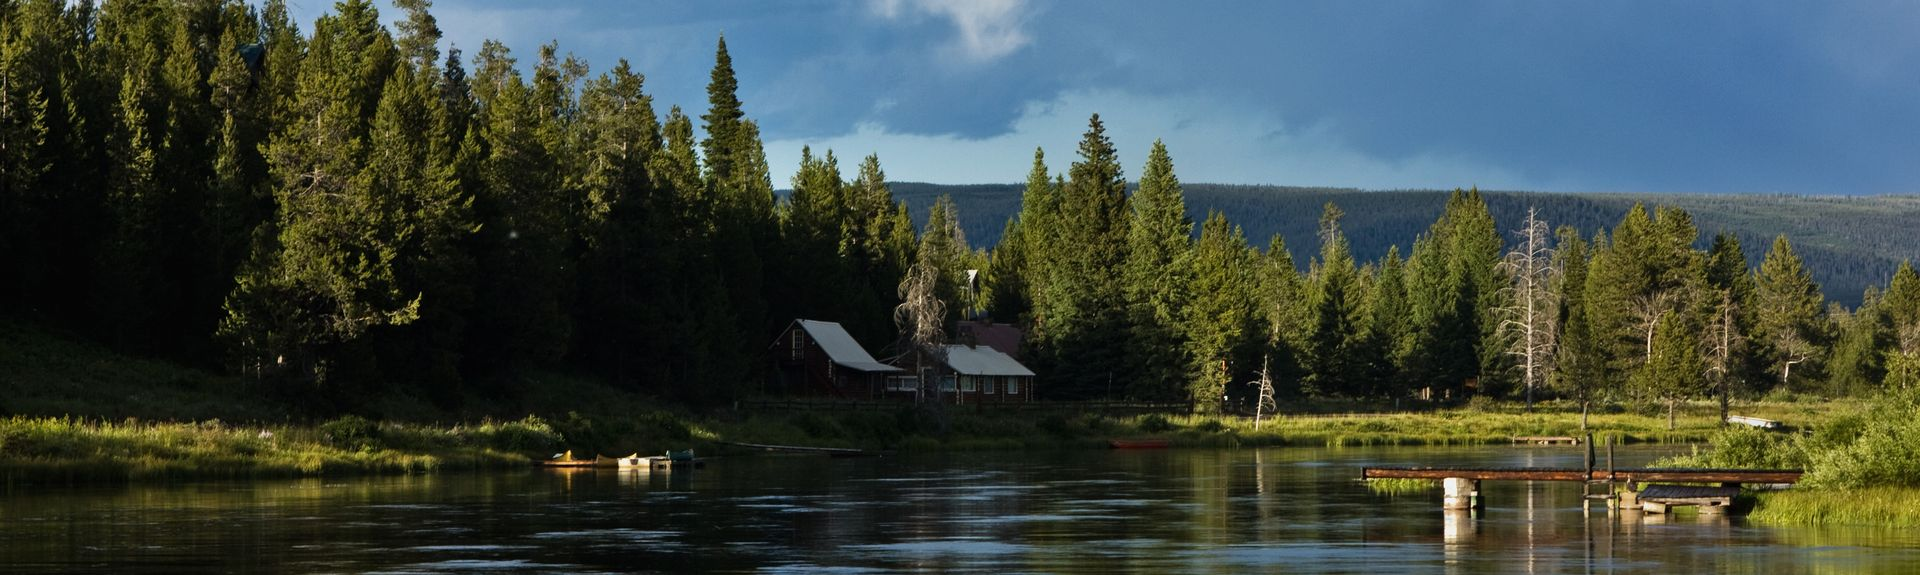 Vrbo® | Island Park, ID Vacation Rentals: Reviews & Booking